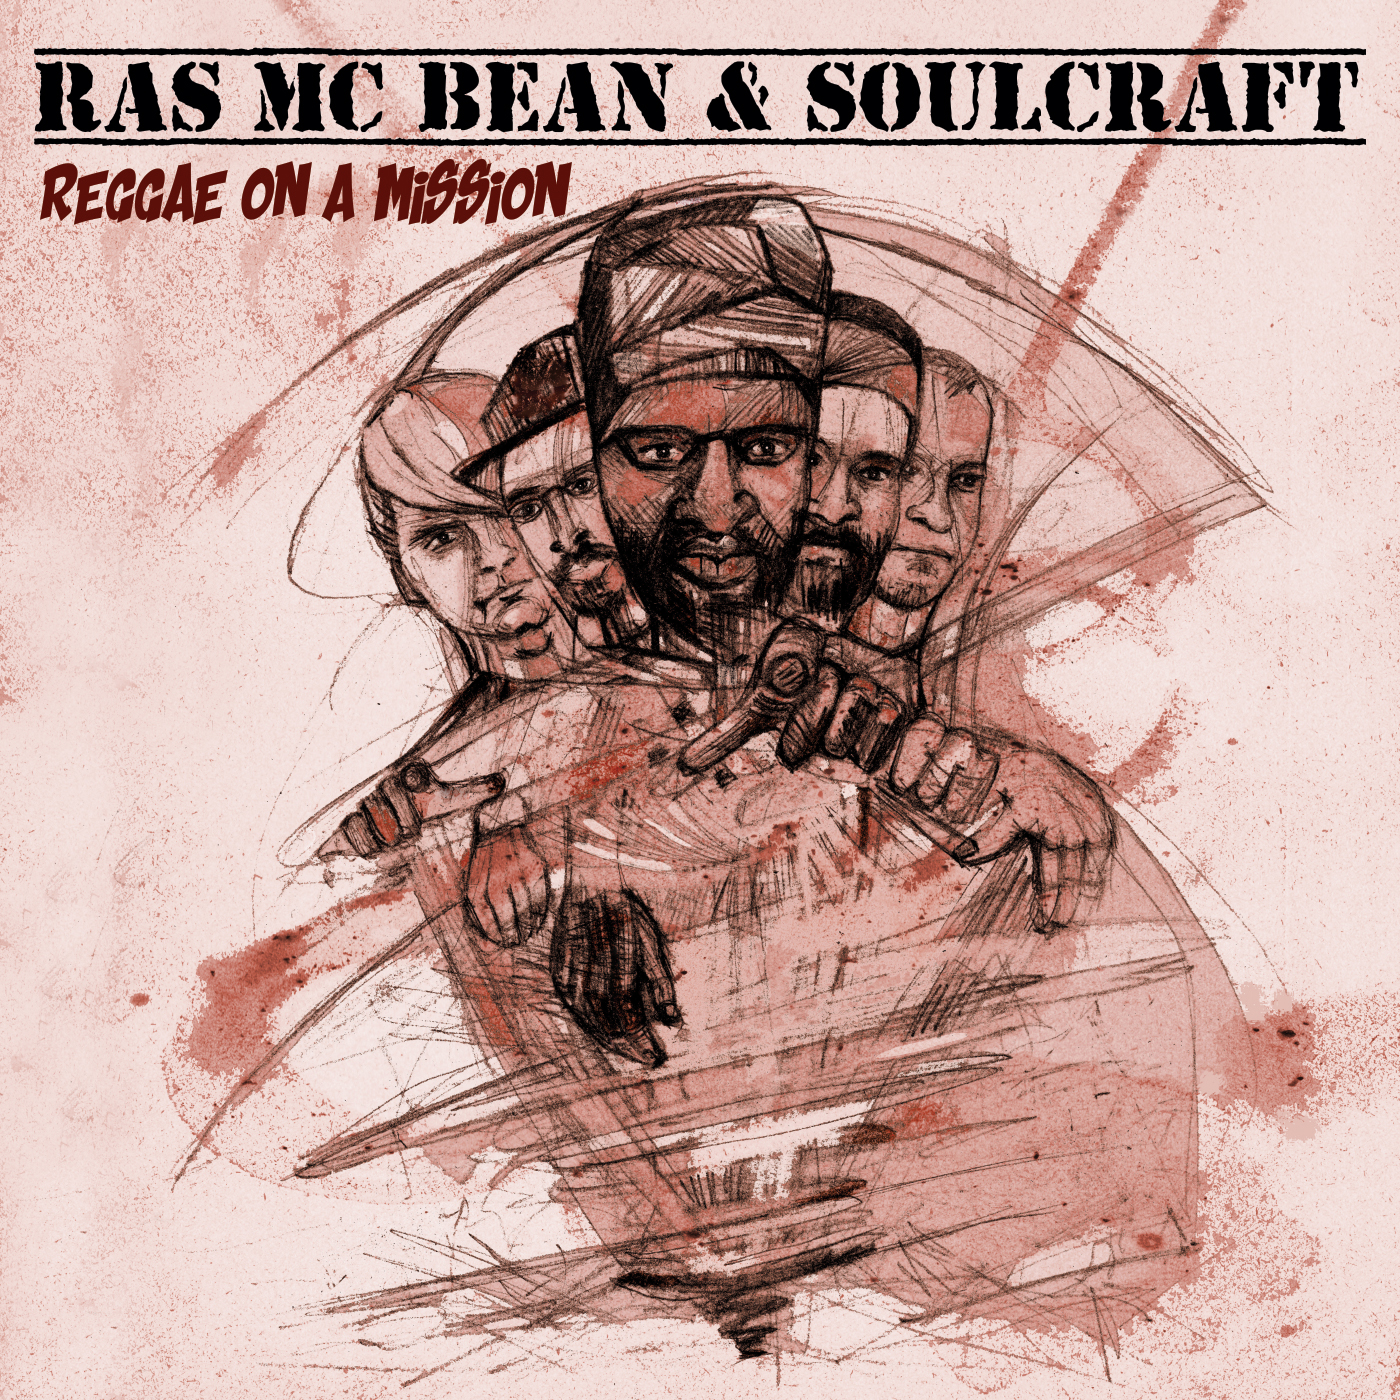 RAS MAC BEAN & SOULCRAFT | Reggae On A Mission